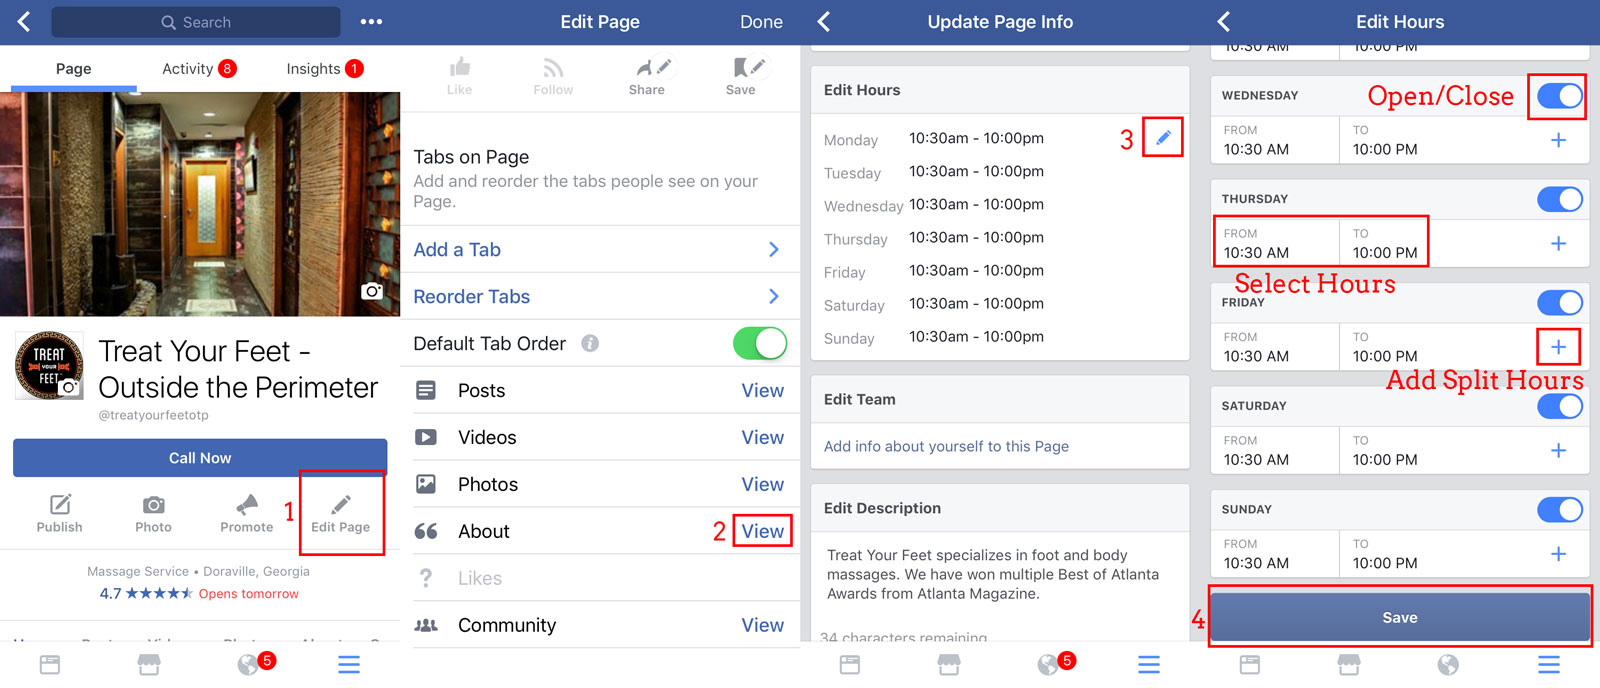 The steps to update a Facebook Company Page's hours of operation on a mobile phone